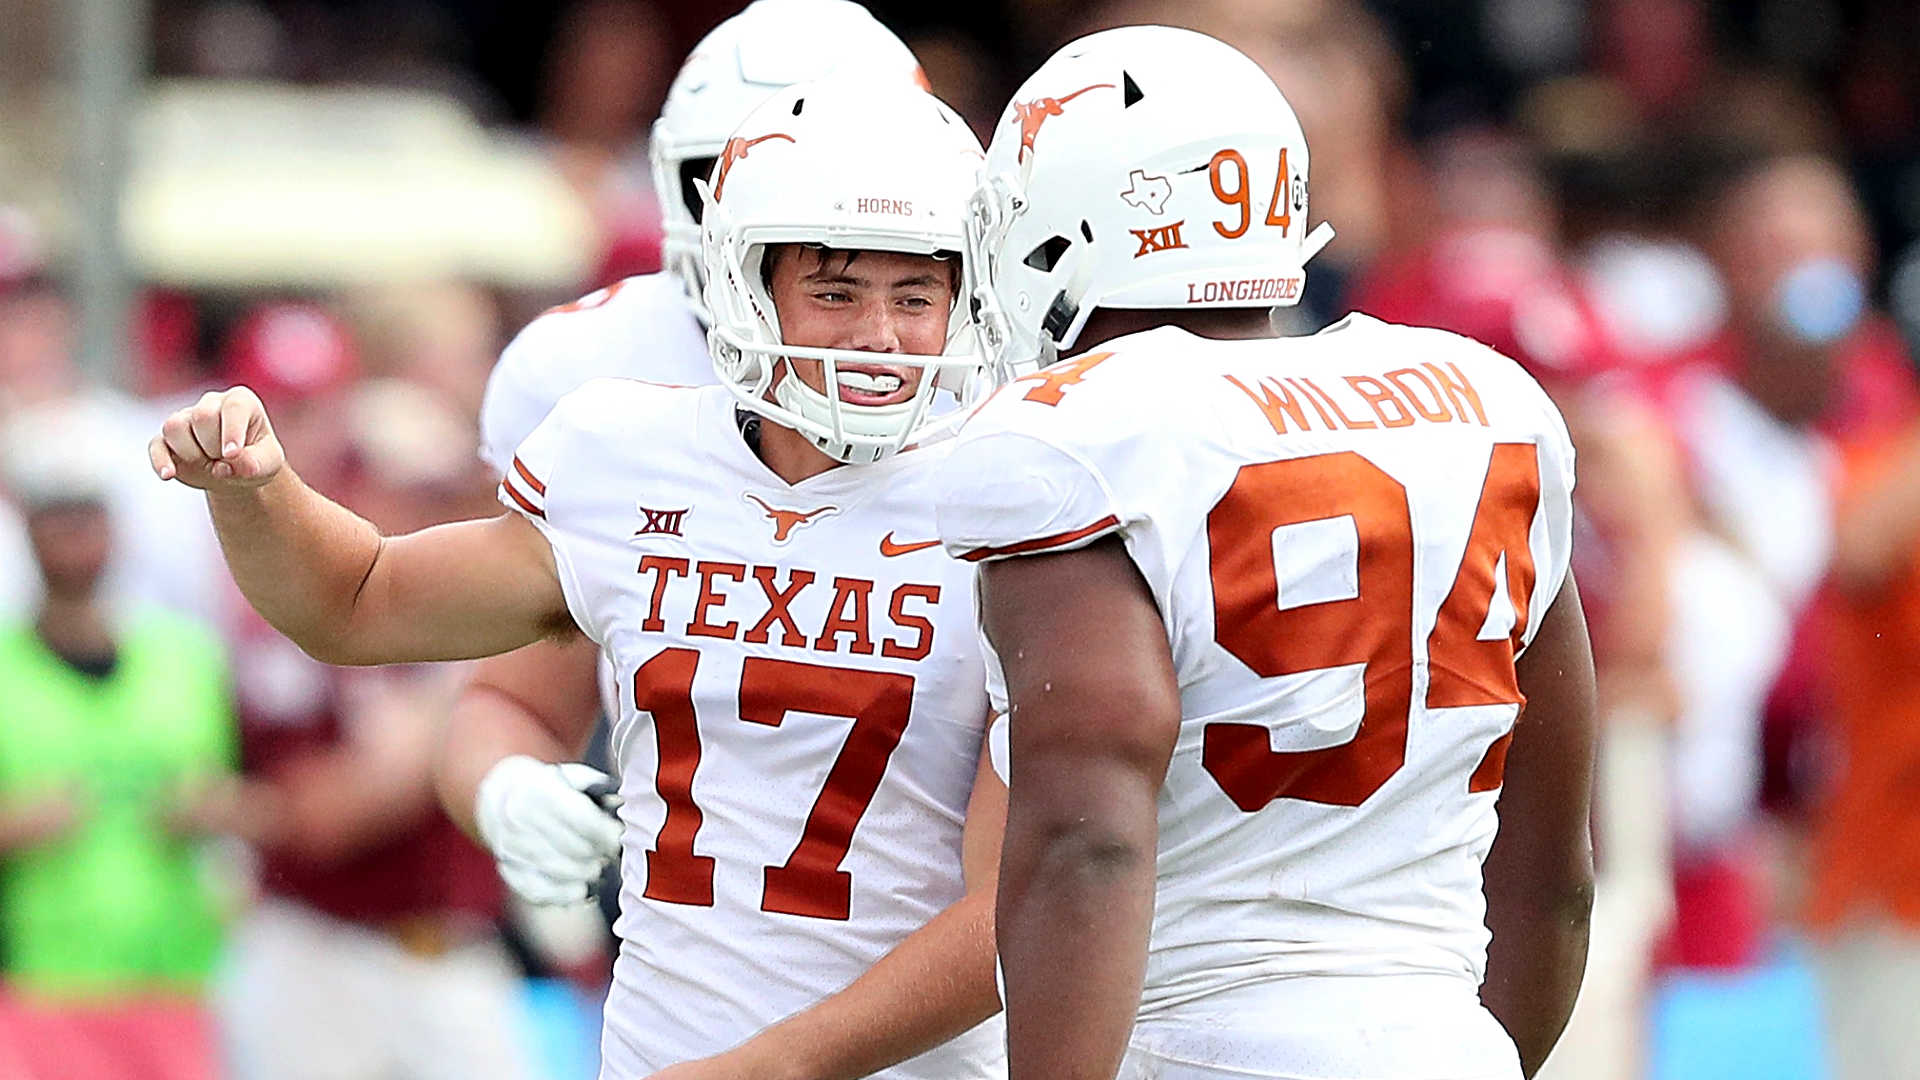 Texas, Michigan among best one-loss teams still in College Football Playoff hunt